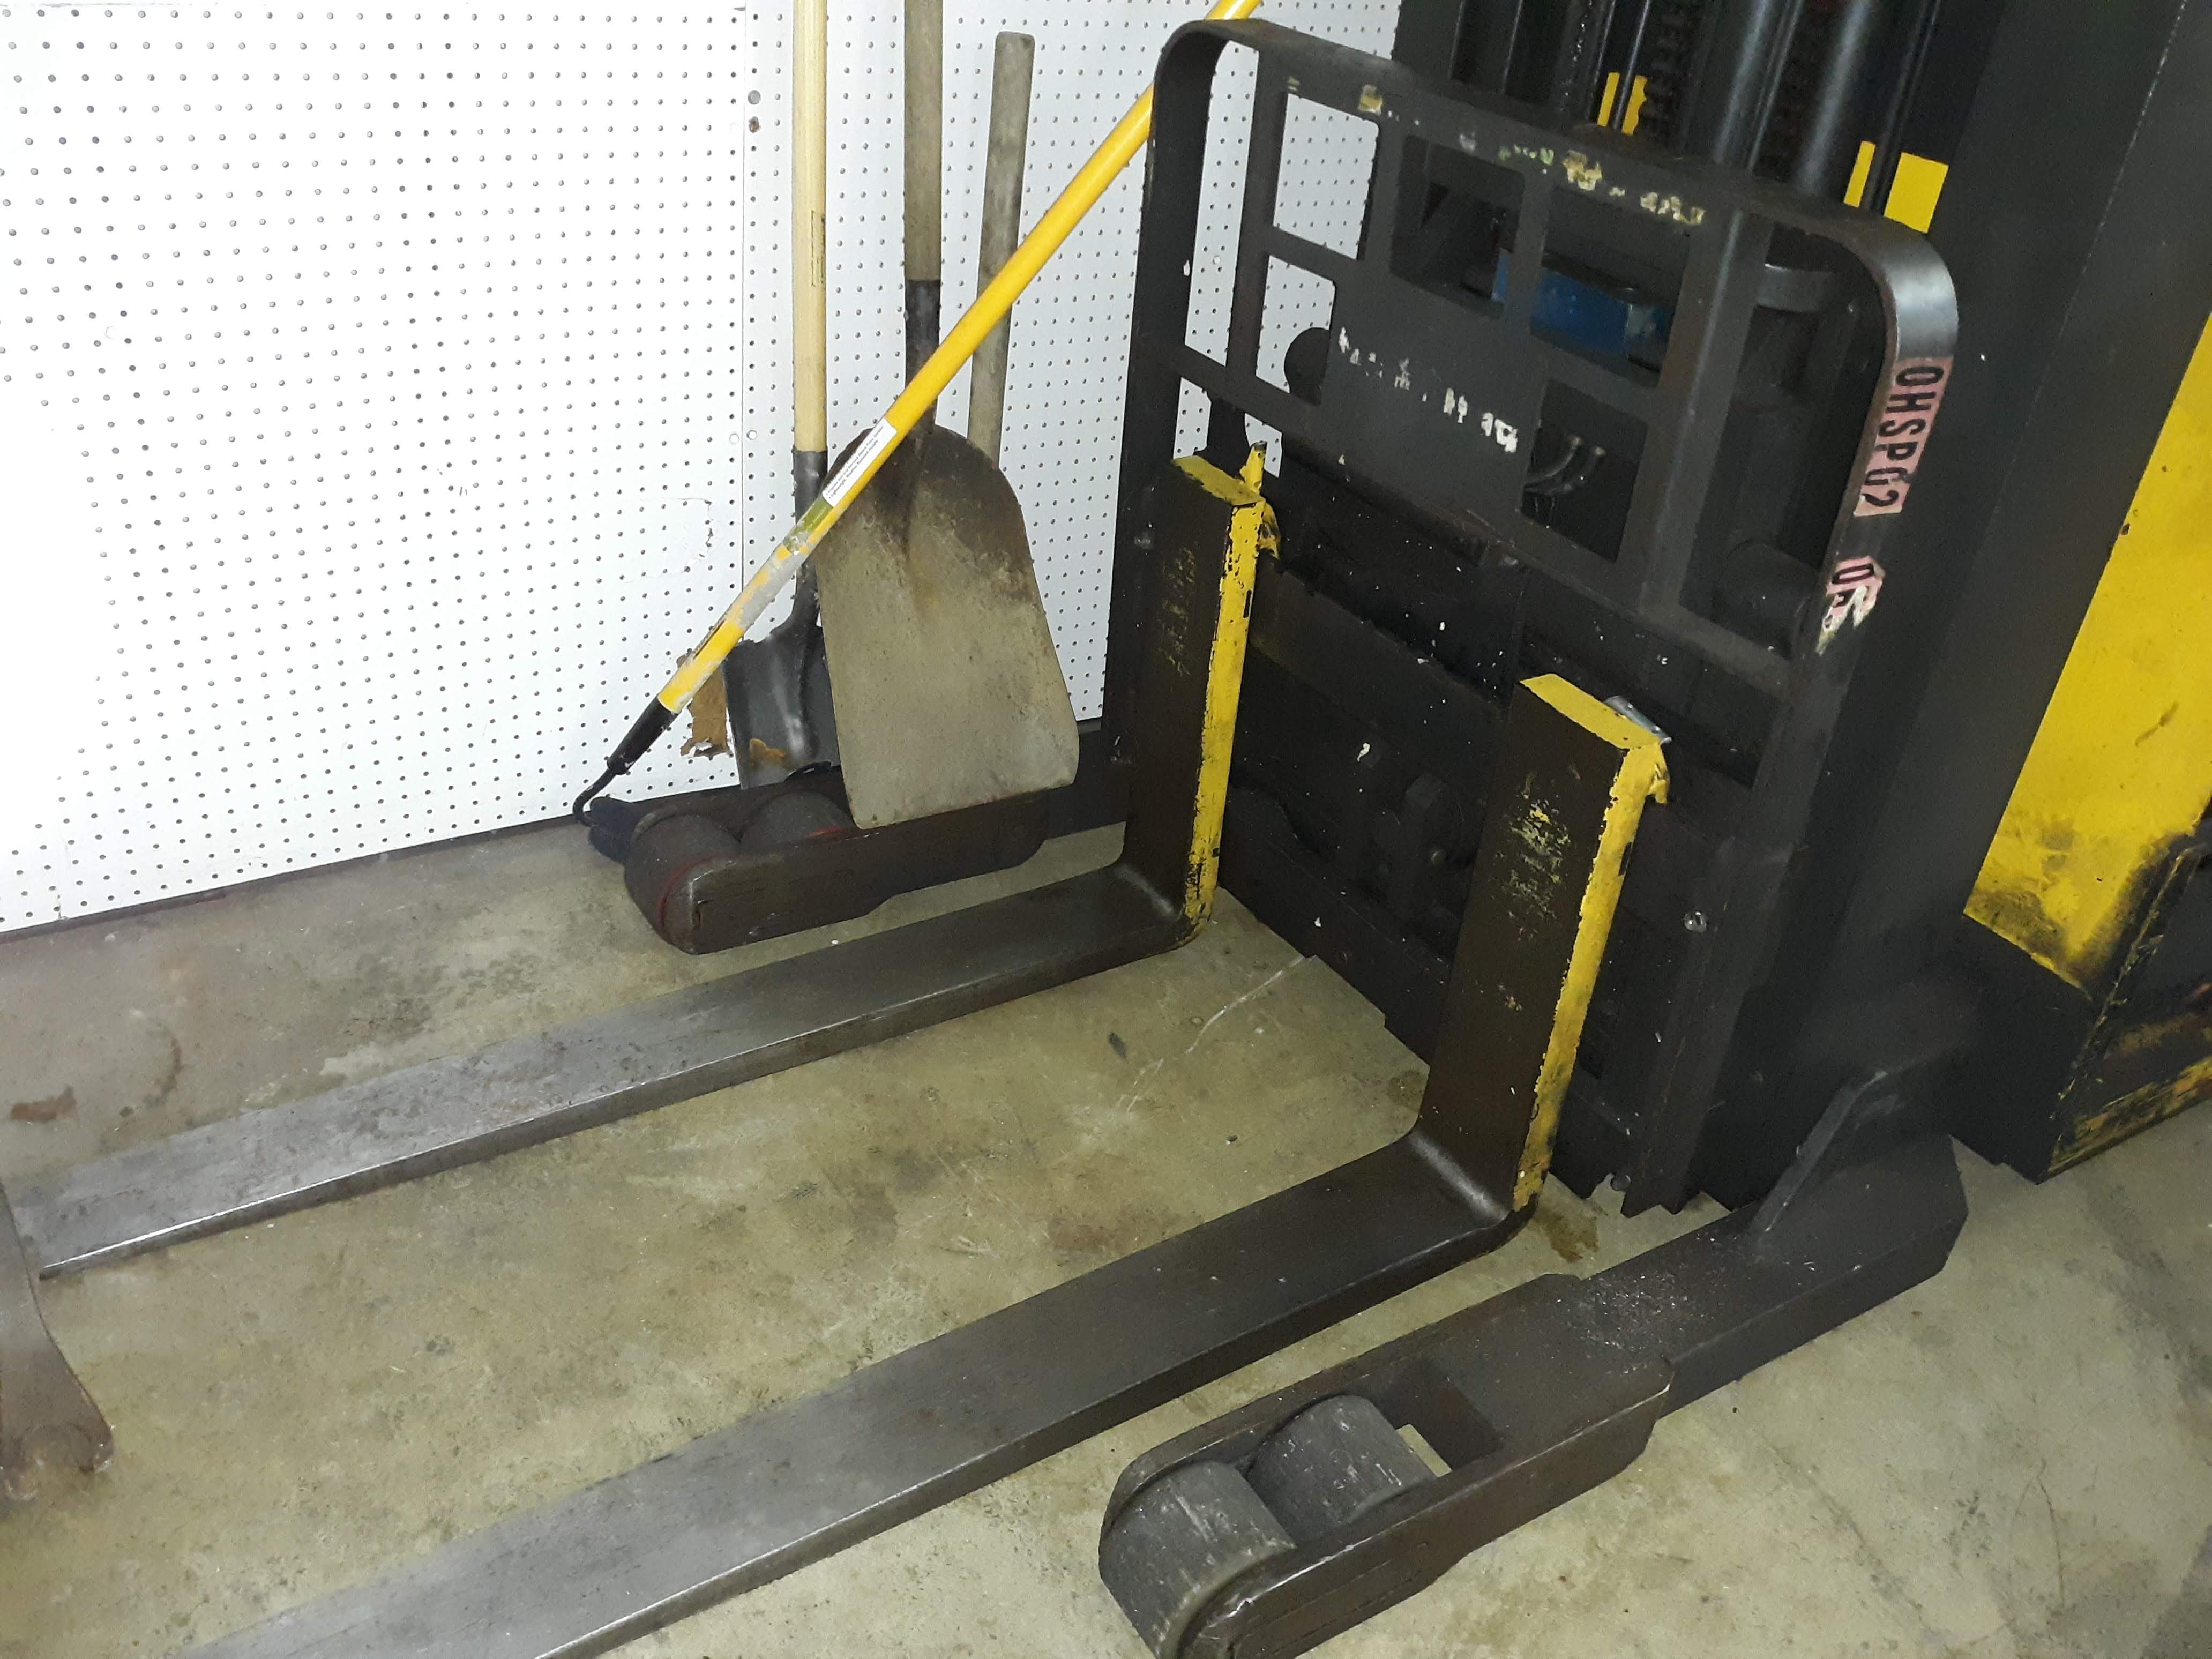 RAYMOND STAND UP FORK TRUCK (NEEDS BATTERY) MODEL-EASI S#EZA-93-00283 36VOLT 4,500 LB. CAPACITY ( - Image 5 of 7